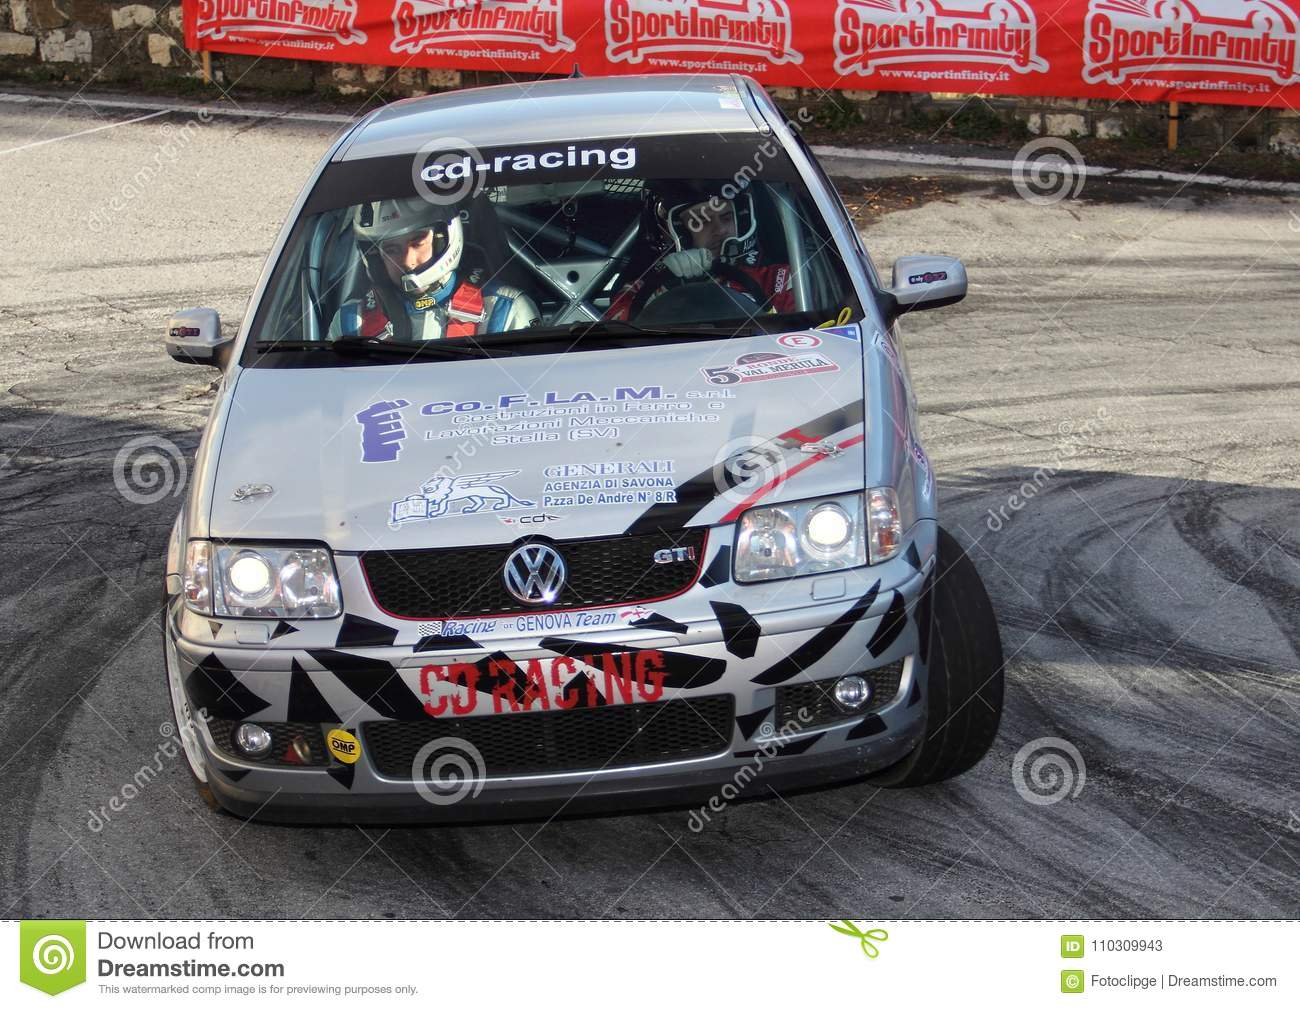 A Vw Polo Gti Race Car Involved In The Race Editorial Stock Photo